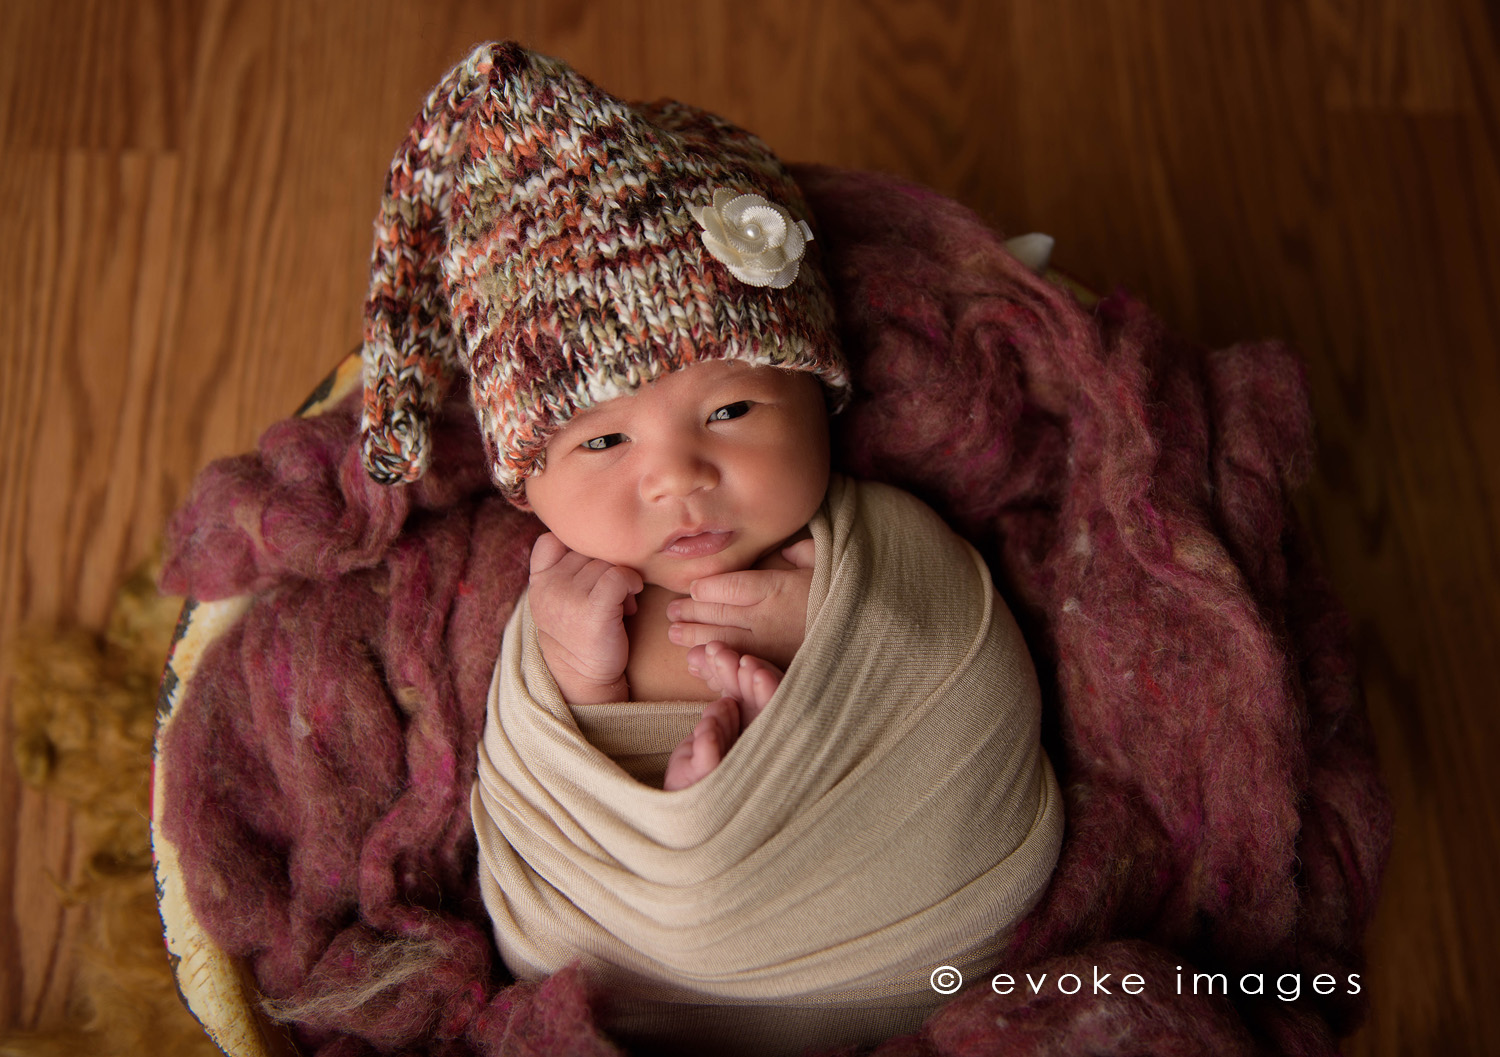 newborn baby in a basket anchorage Alaska photography